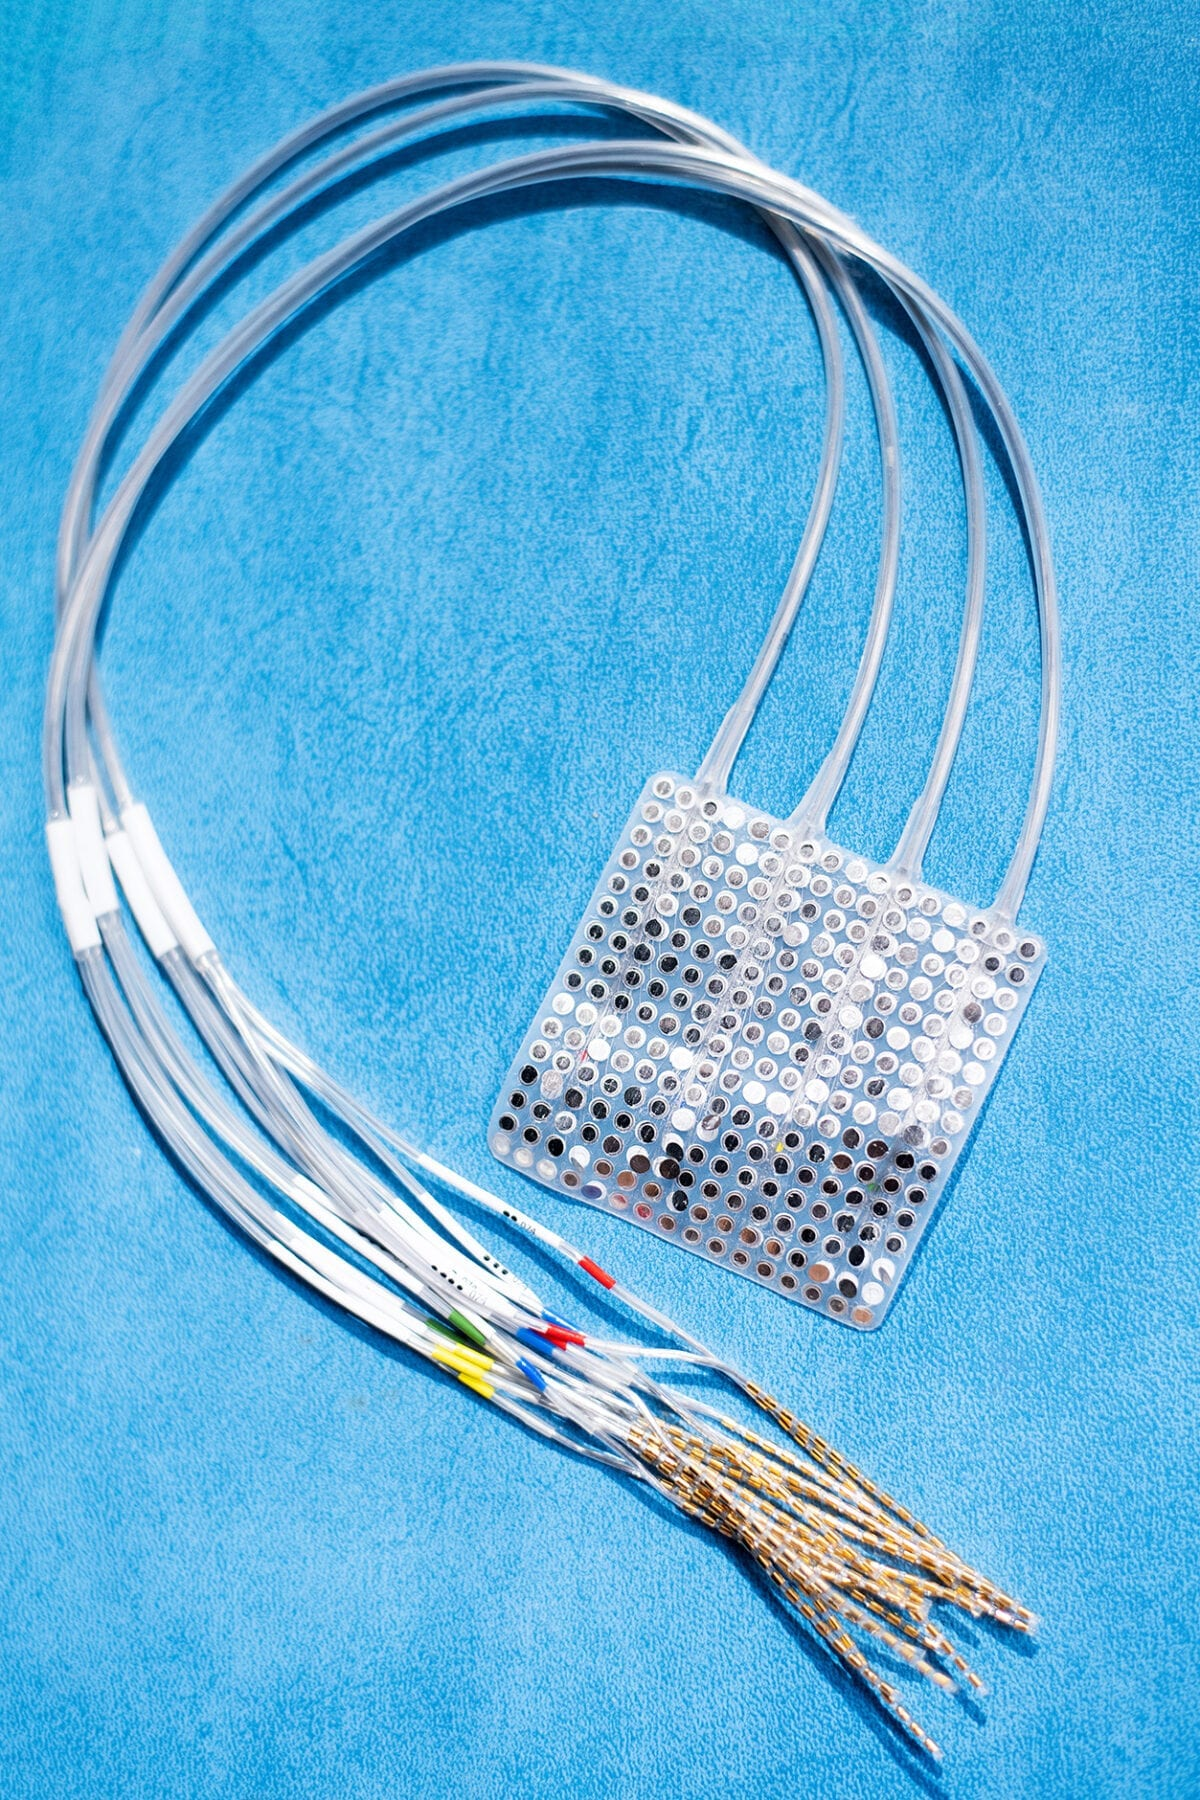 An ECoG array comprises a pad of electrodes that is surgically placed on the surface of the brain. Photo by Noah Berger